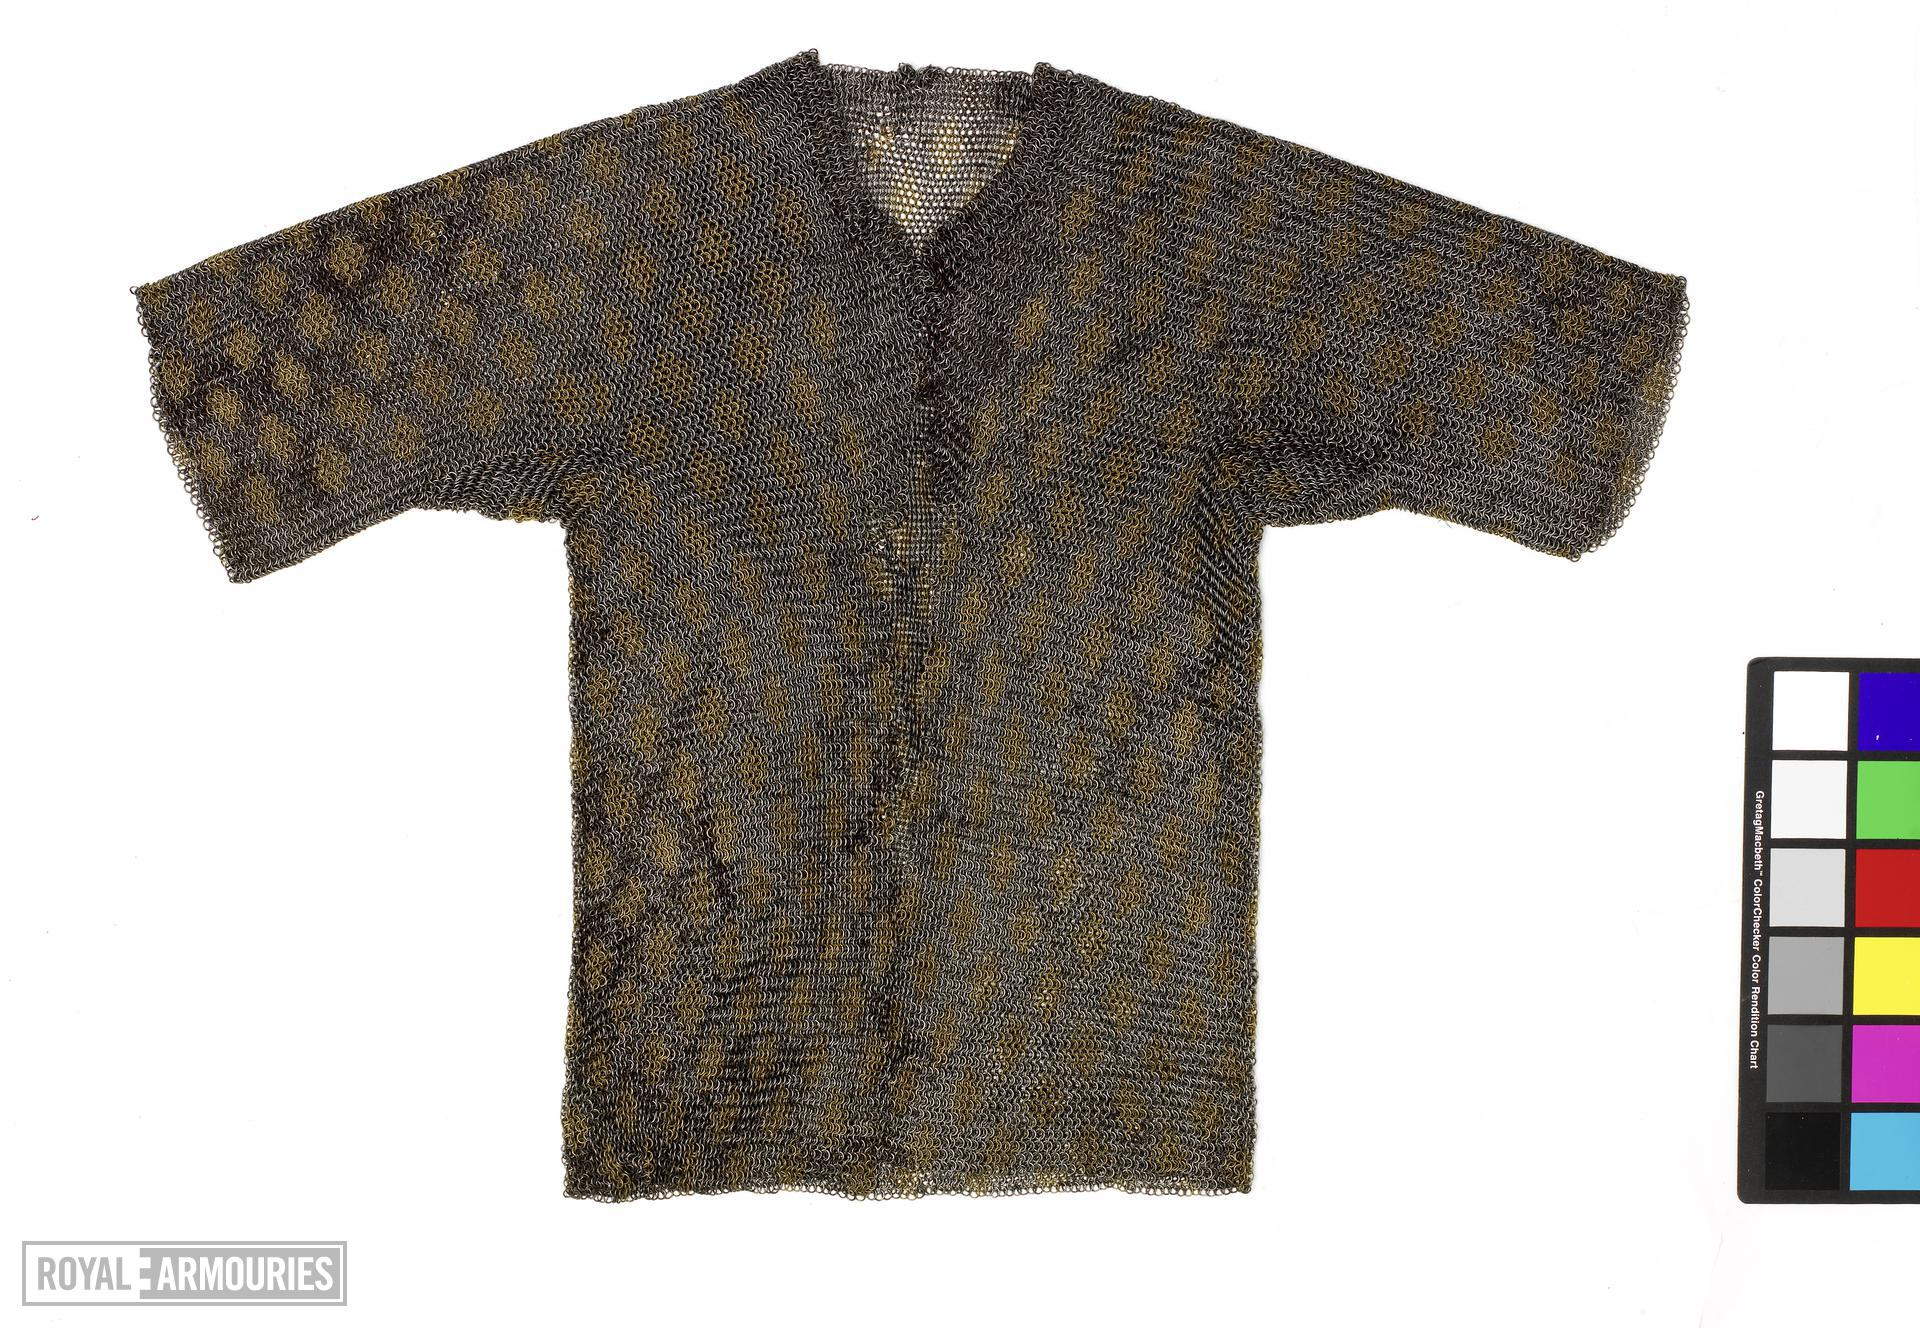 Mail shirt for a boy. Tibetan, 19th century (XXVIA.18a)